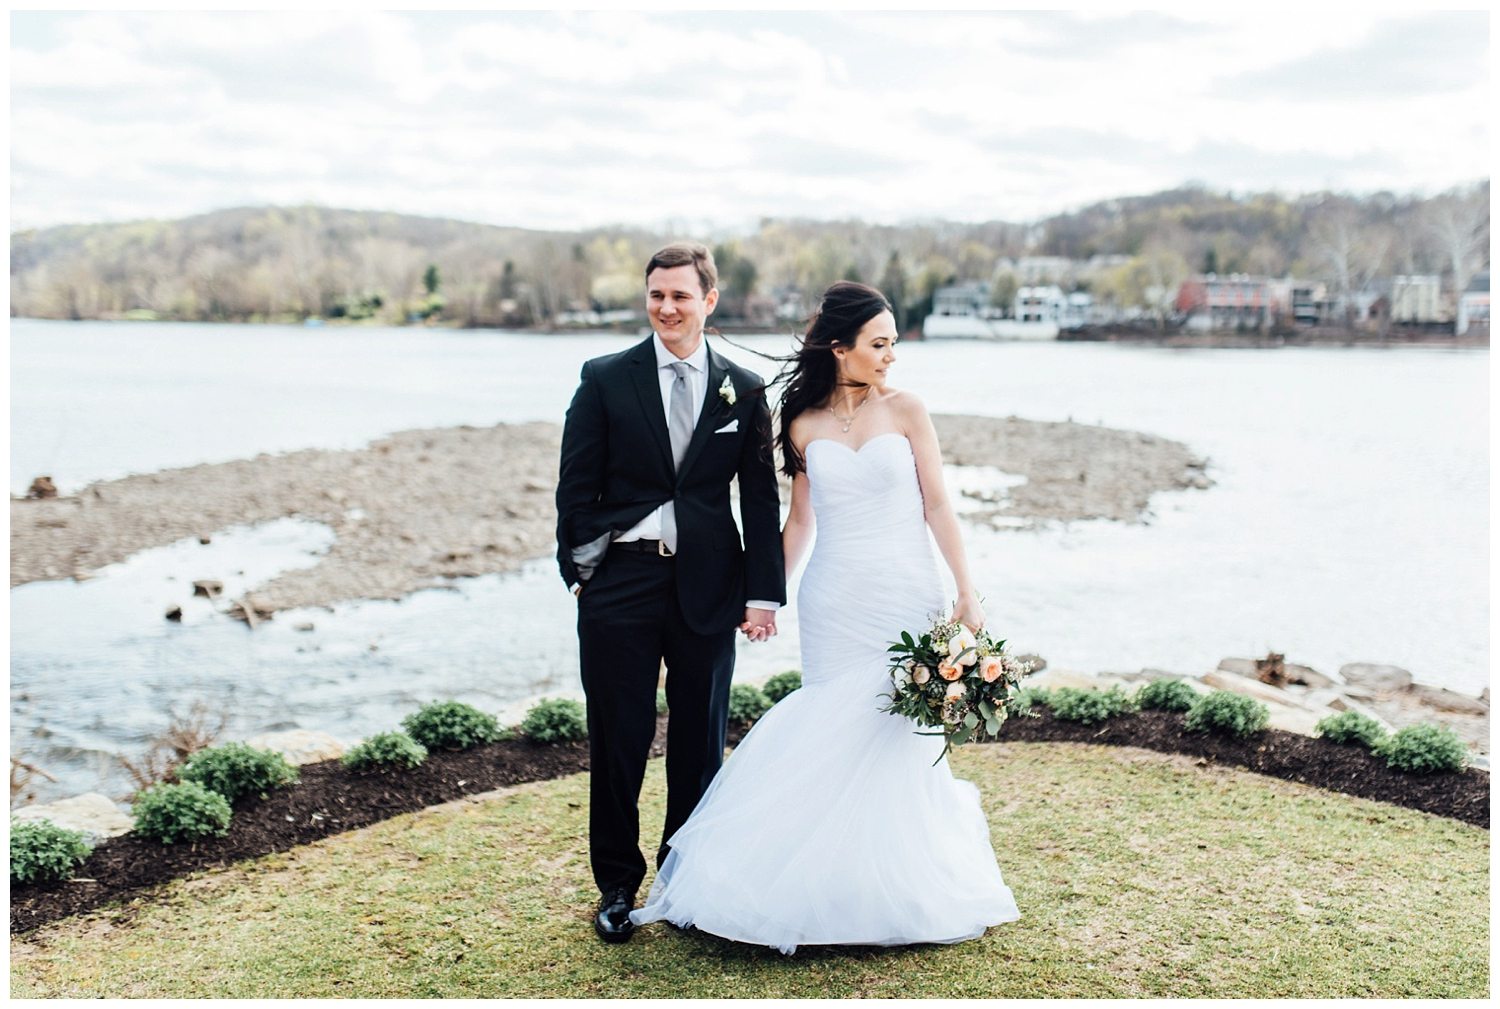 New York, New Jersey and Pennsylvania wedding vendors, resources and inspiration for the modern couple | Bride and Groom by water